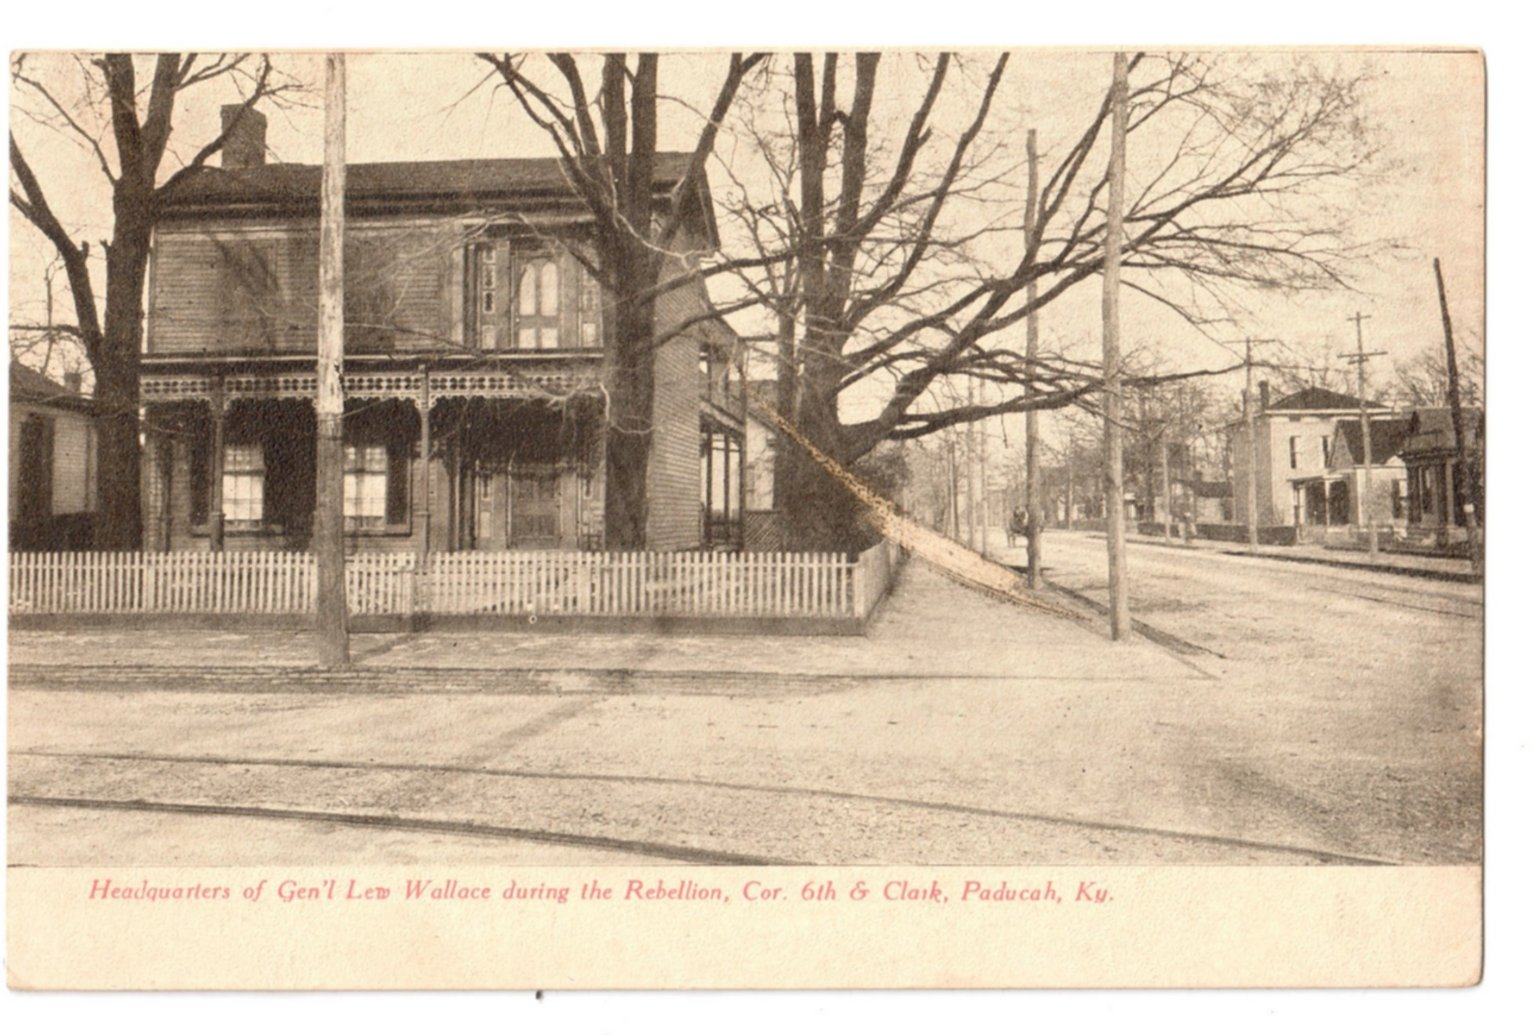 Headquarters of Gen'l Lew Wallace during the Rebellion, Cor 6th & Clark, Paducah, Ky.